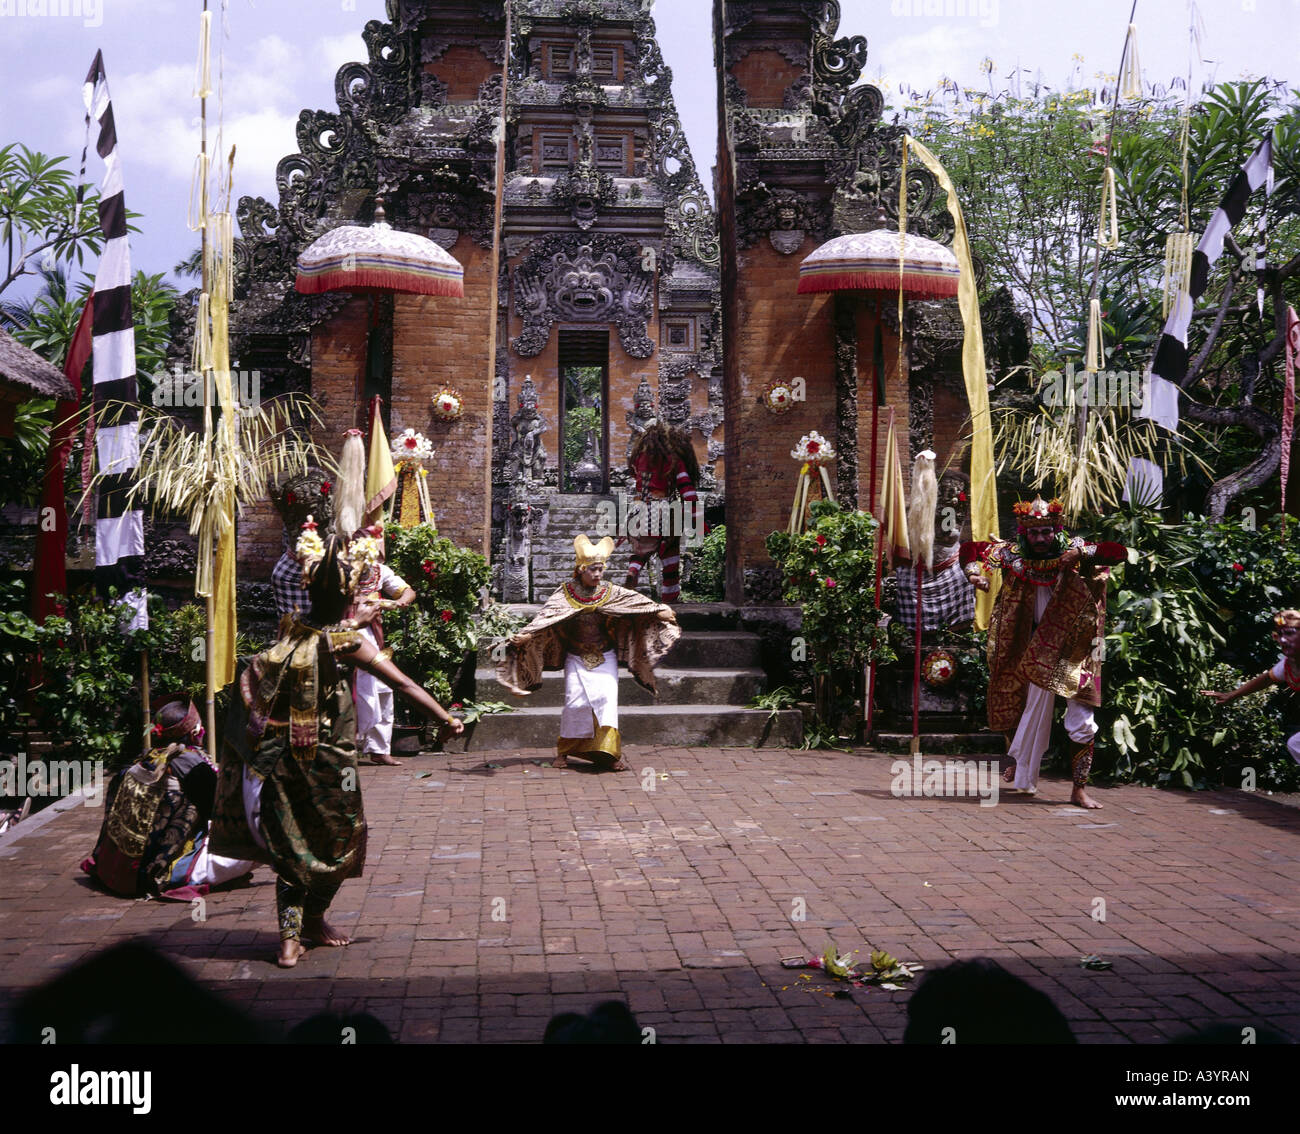 travel /geography, Indonesia, Bali, tradition / folklore, Barong dance, appearance of Dewi Kunti, South East Asia, - Stock Image